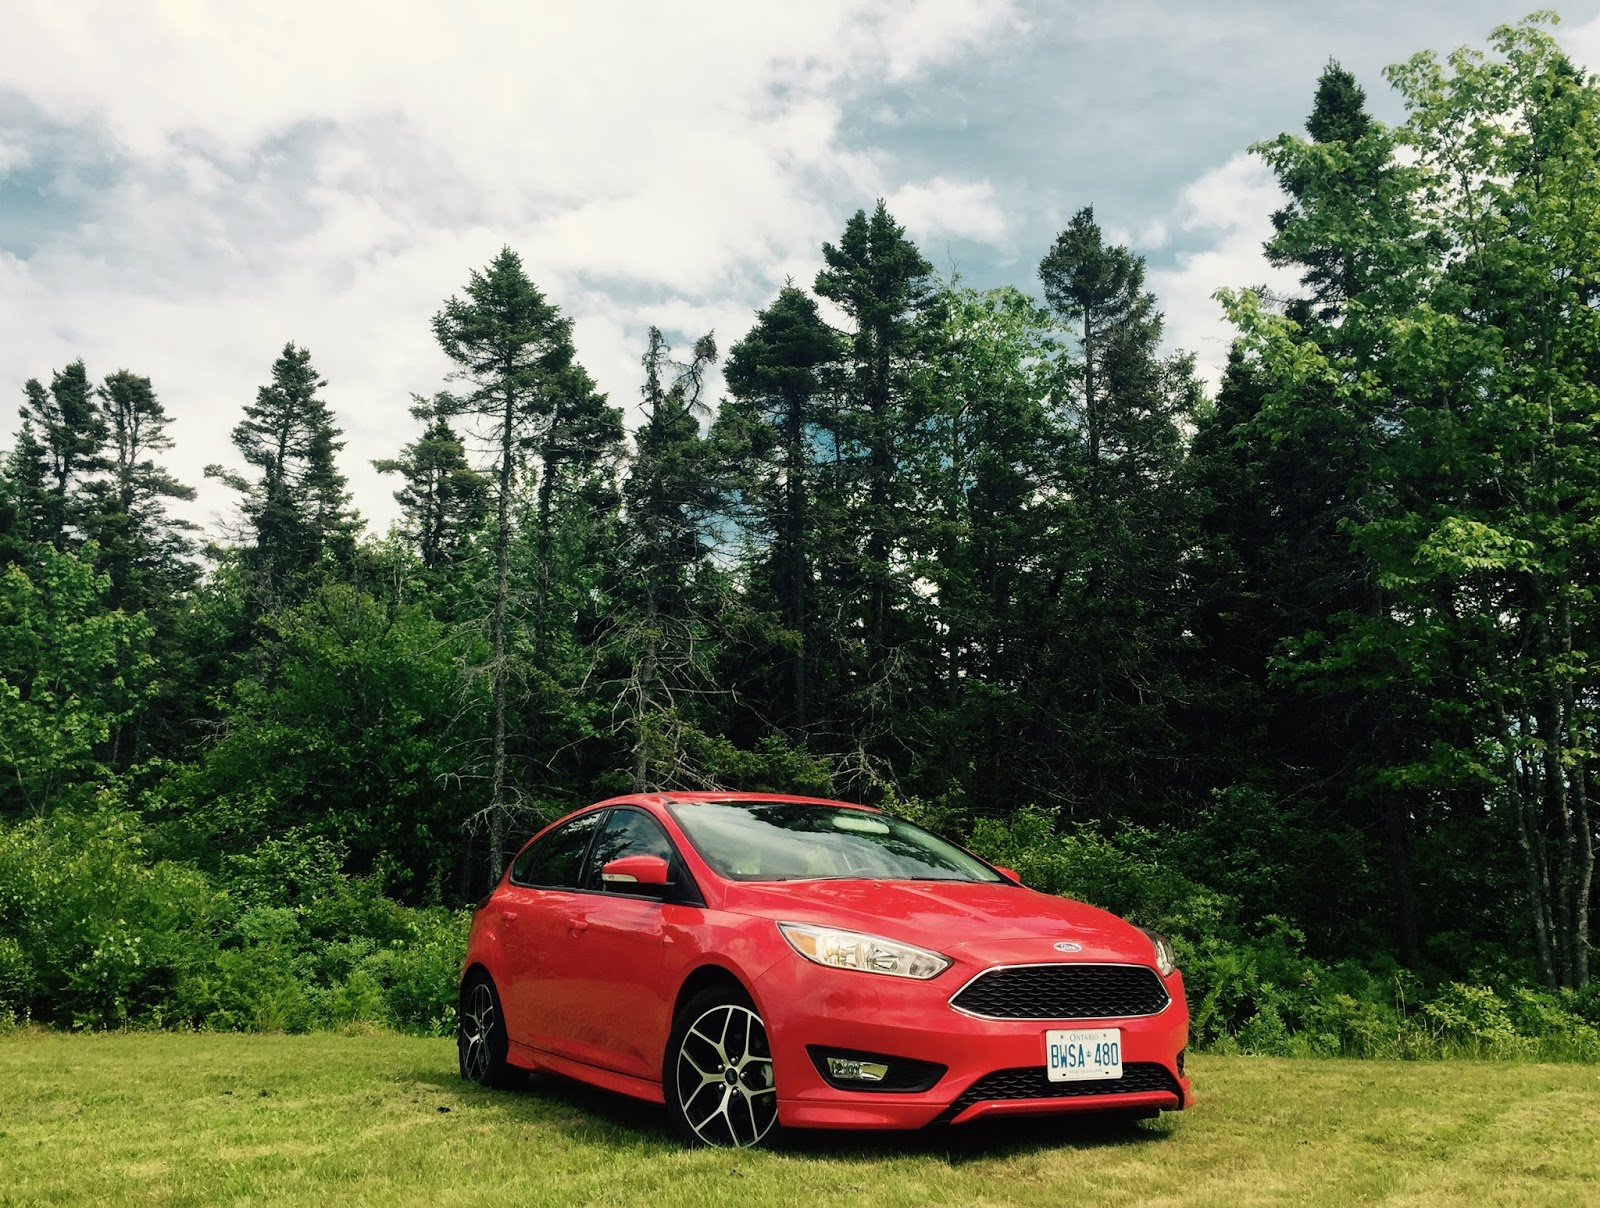 2015 ford focus se hatchback review charming chassis continues to create a compelling compact. Black Bedroom Furniture Sets. Home Design Ideas